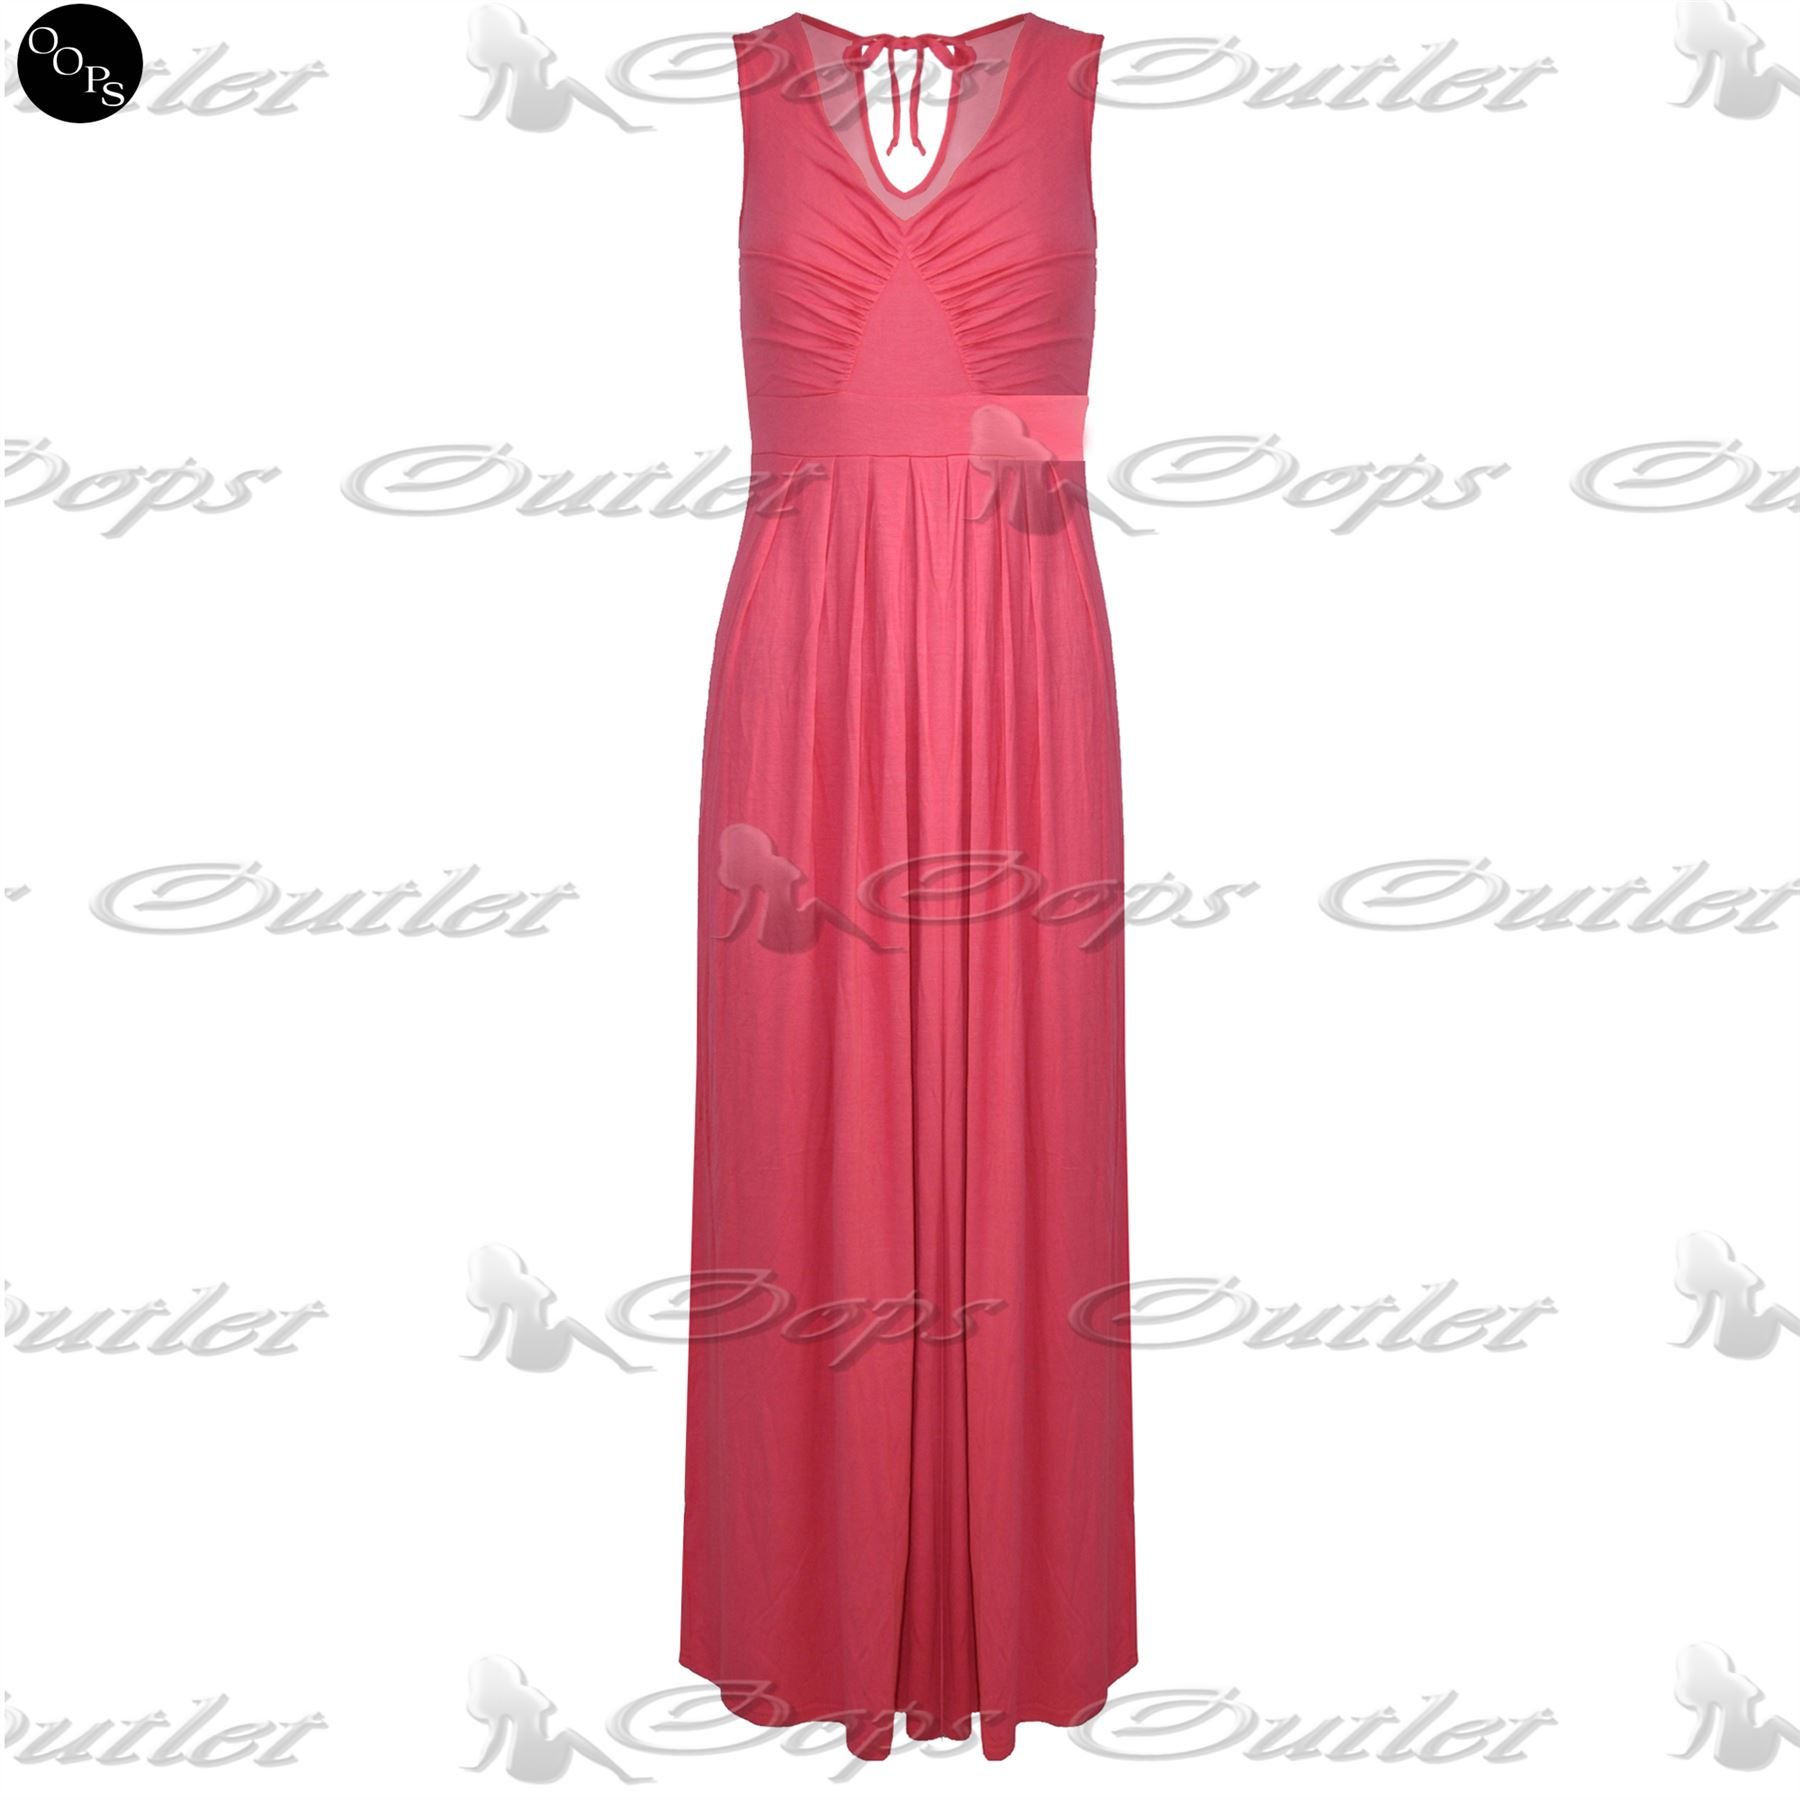 Womens-Pleated-Sleeveless-Full-Length-Ladies-Tie-Back-V-Neck-Flared-Maxi-Dress